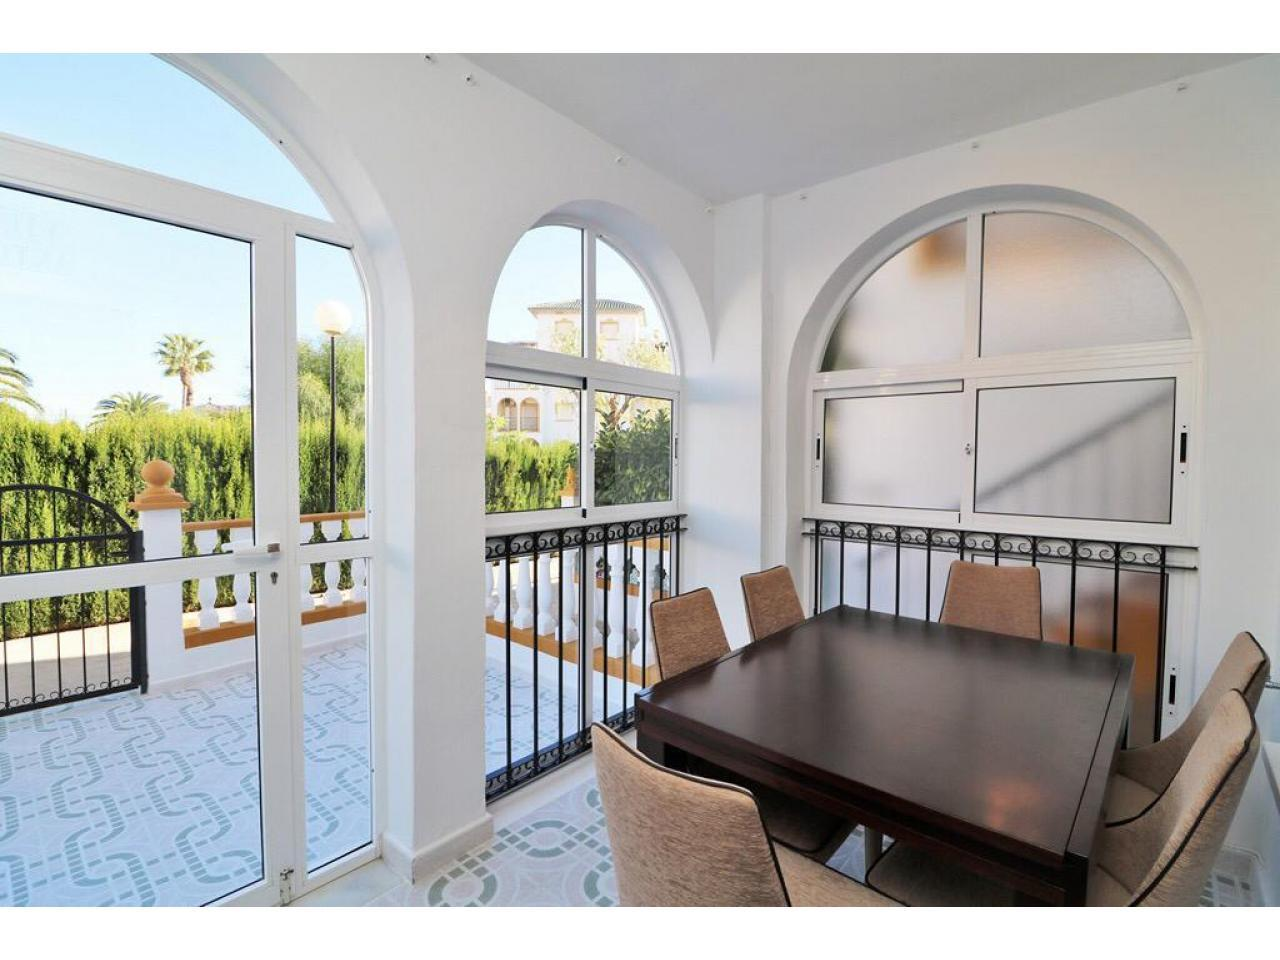 Apartment in Torrevieja, Spain for rent - 6